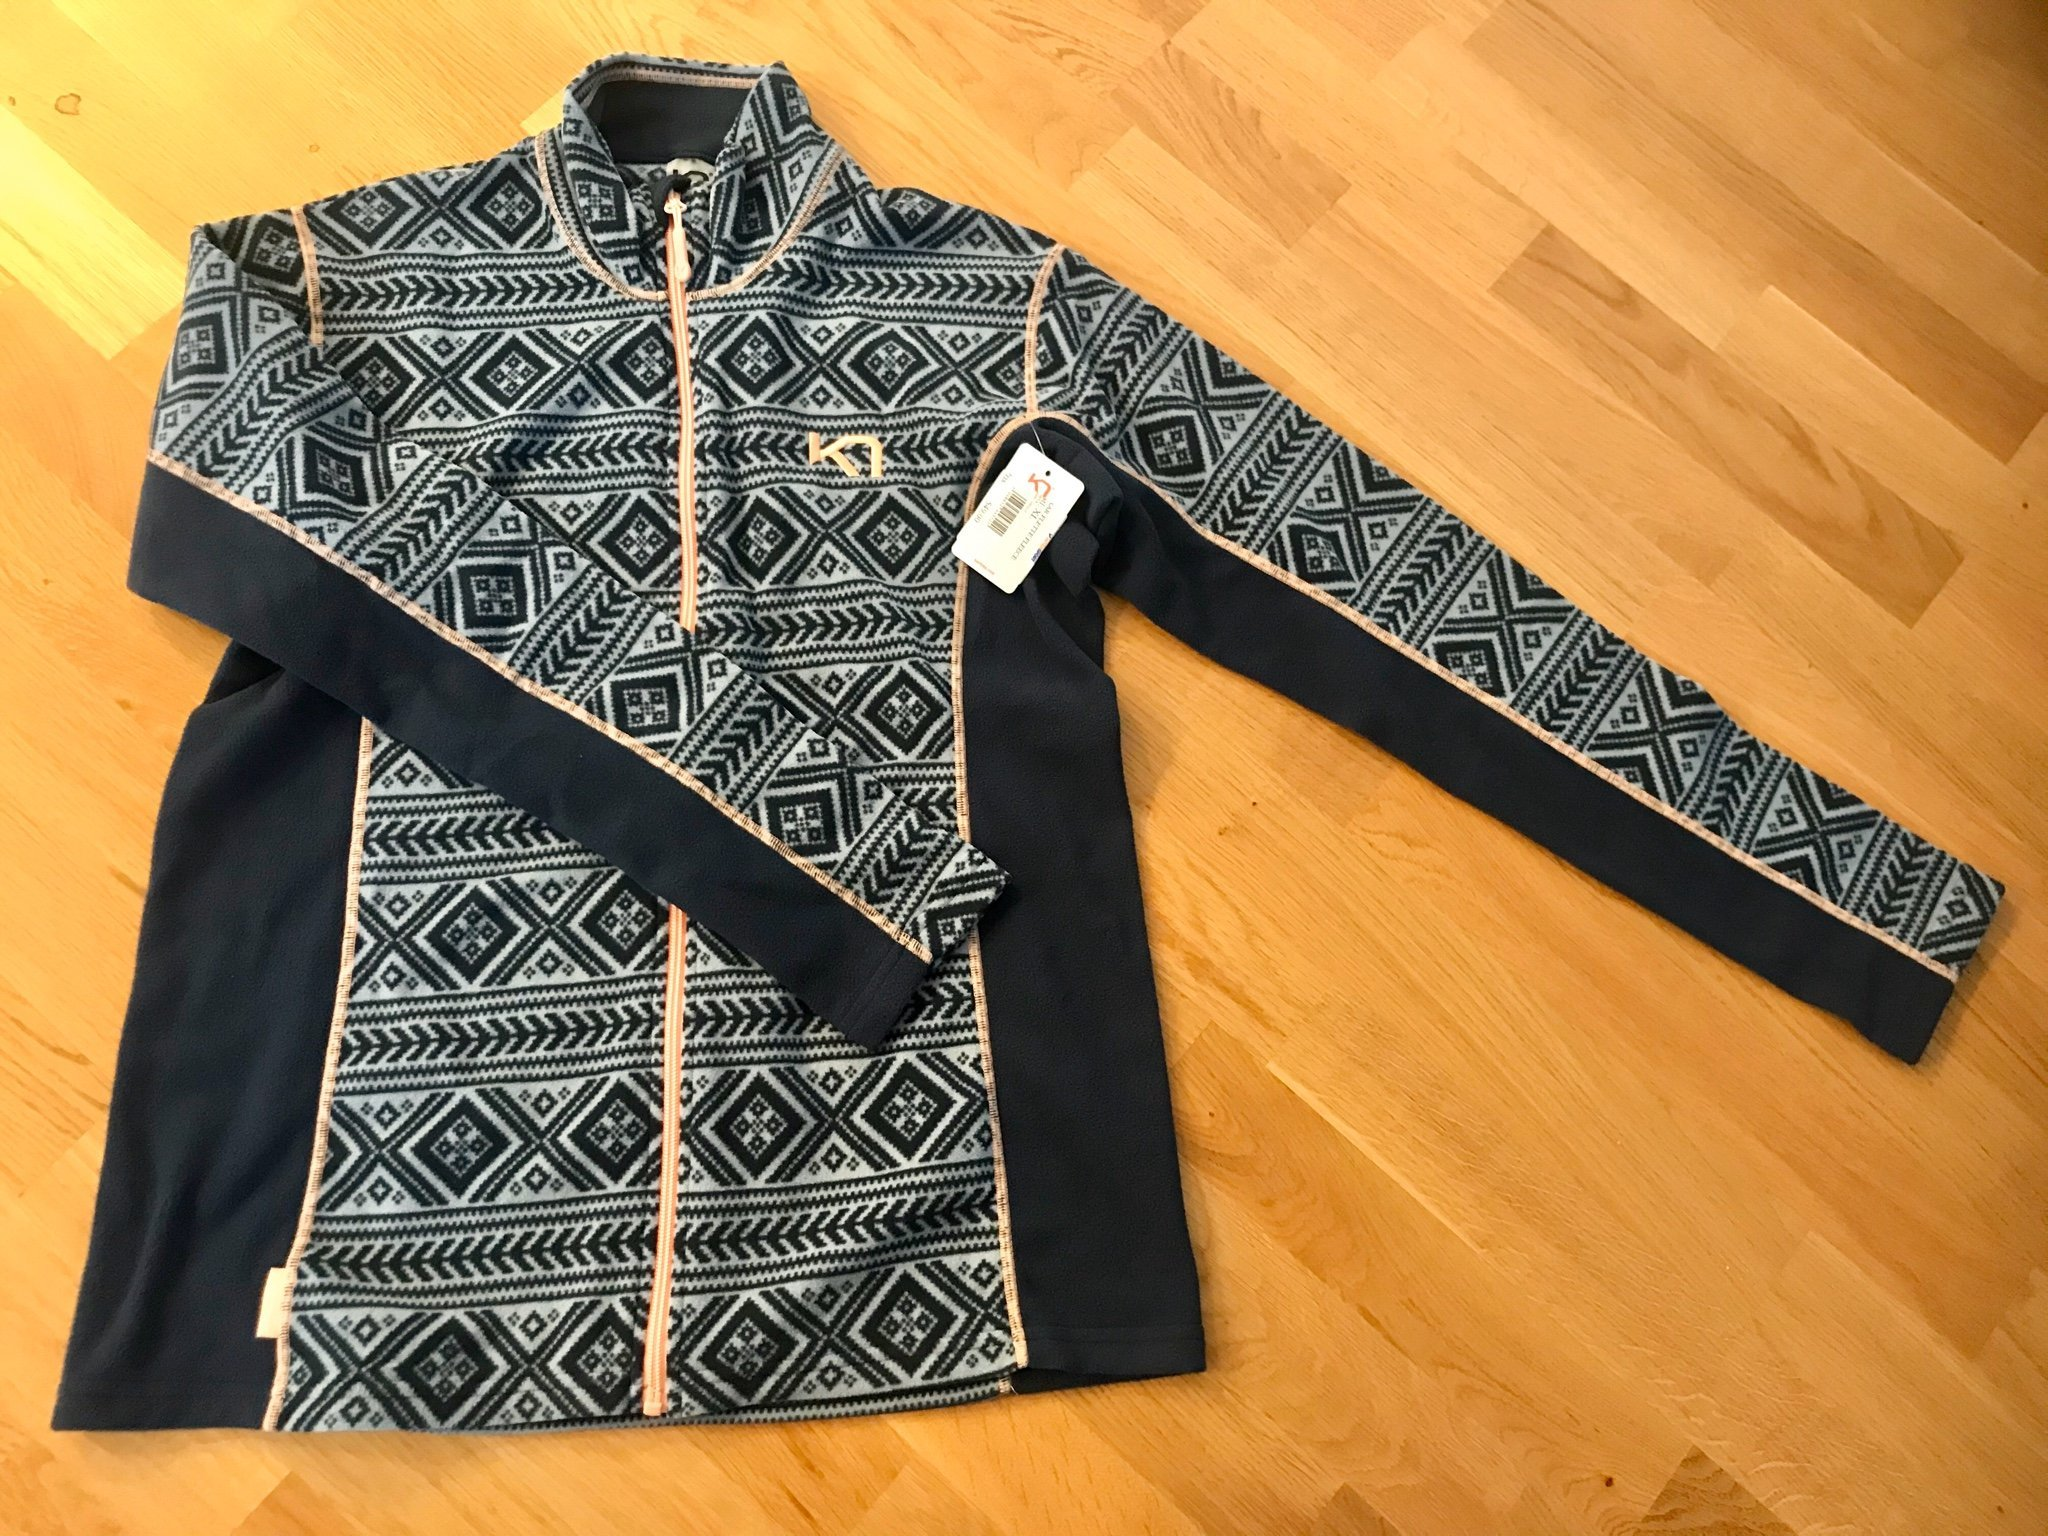 FLEECE Tröja Intersport XL helt ny (386569592) ᐈ Köp på Tradera